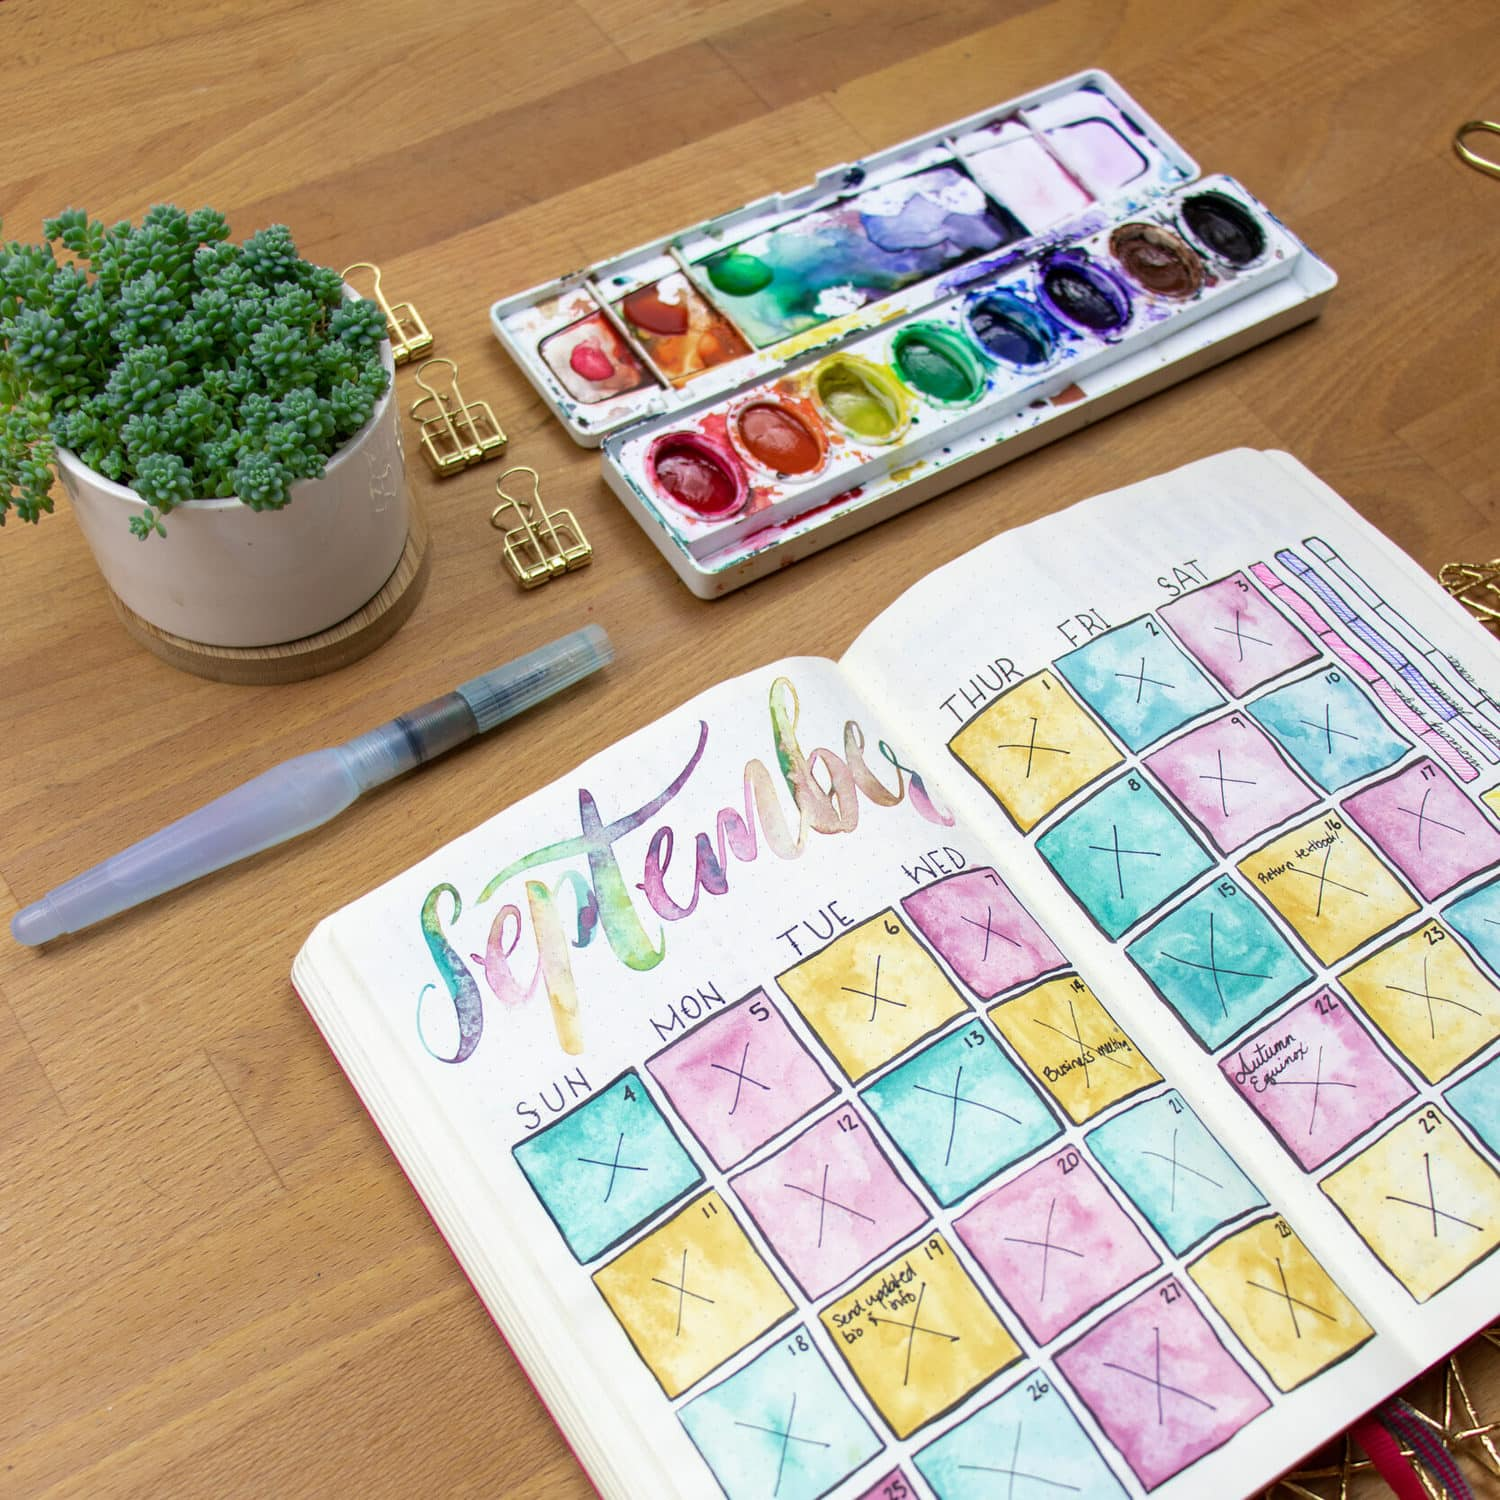 Journal open to watercolor calendar with prang watercolor palette open on desk.